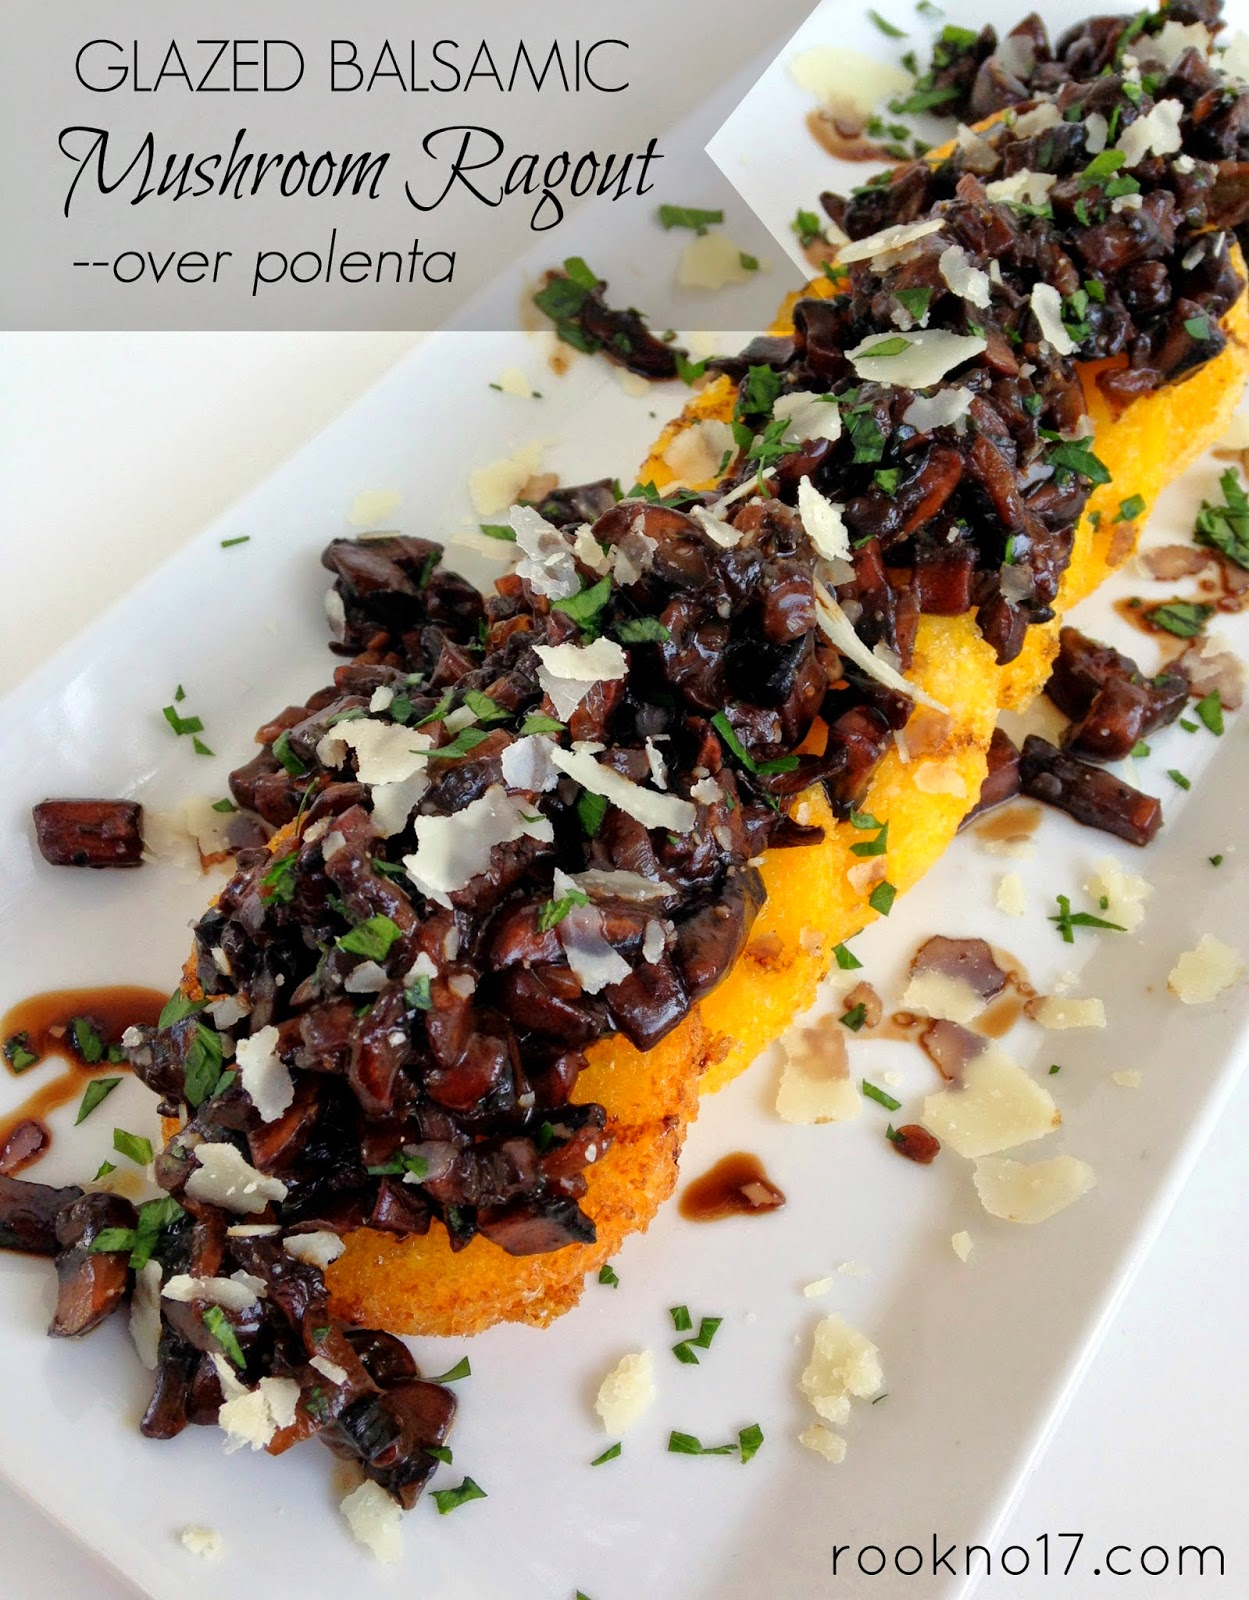 http://3.bp.blogspot.com/-MNdpCeUHCxo/U2LgY2aw6fI/AAAAAAAAaLk/kaG5SP__vic/s1600/glazed+balsamic+mushroom+ragout+over+polenta+meatless+recipe-002.jpg